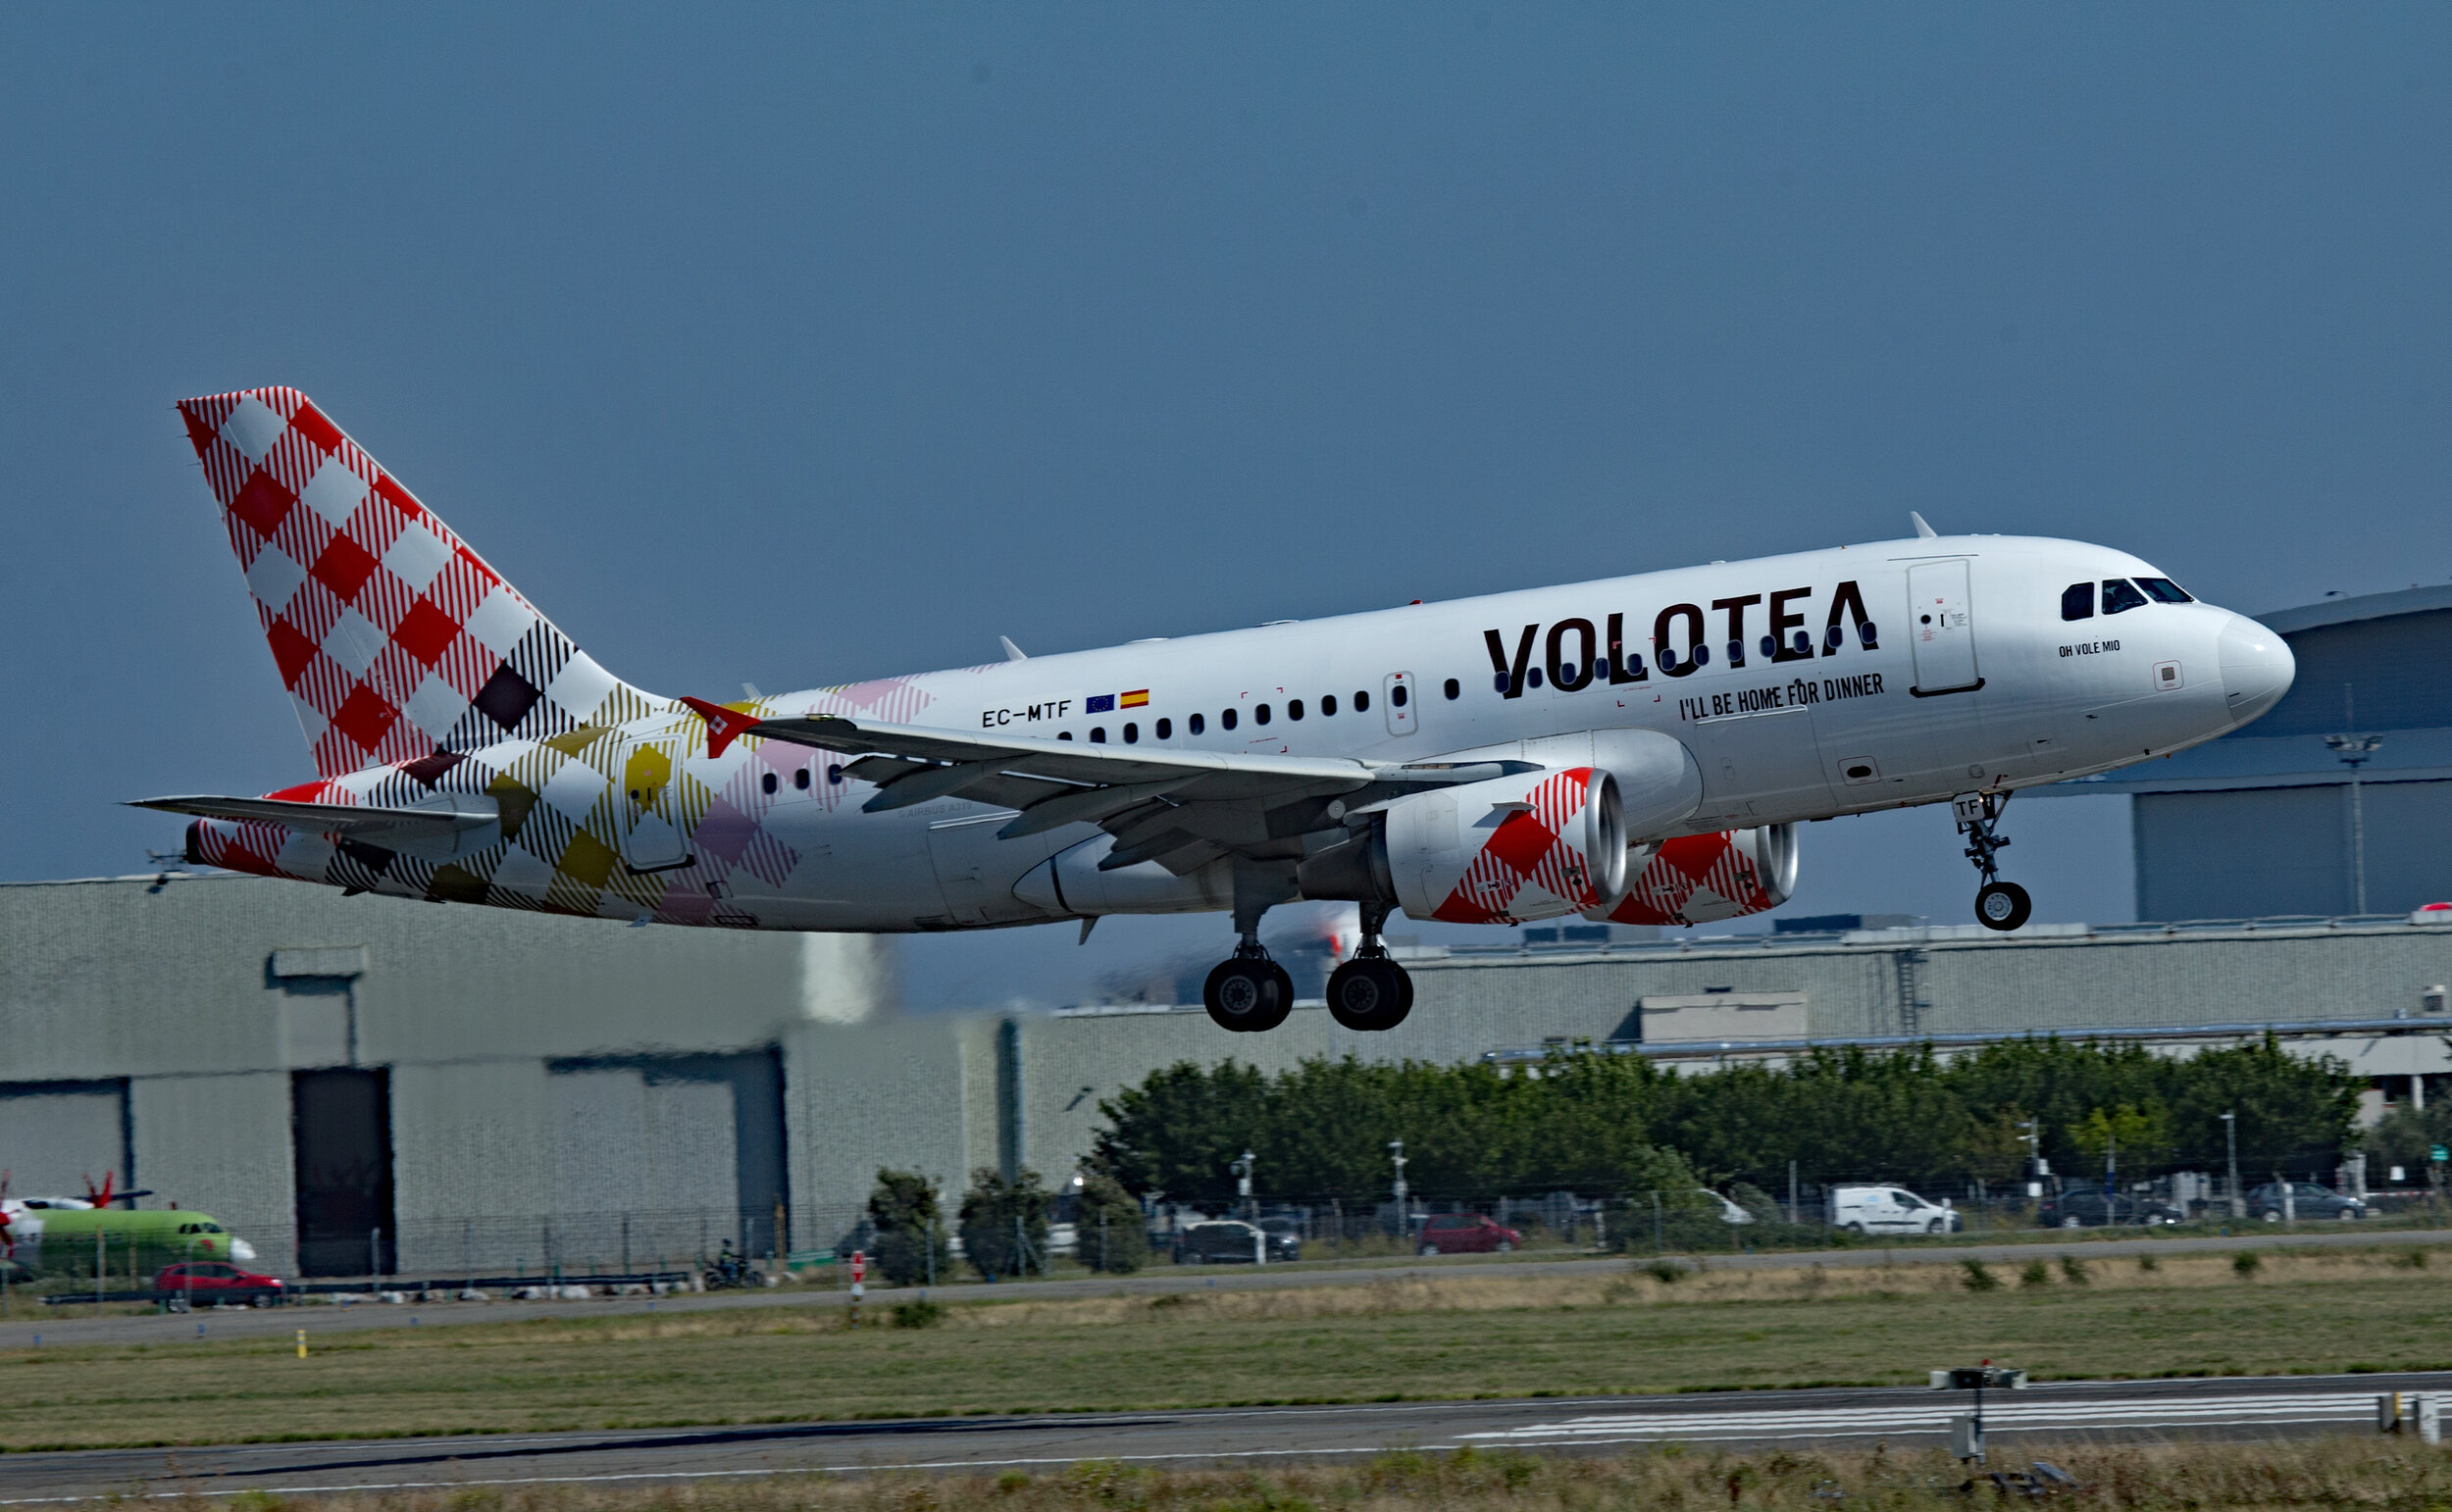 Volotea Airbus A319 EC-MTF on very short finals to Runway 14 Right at Toulouse 20th September 2019. Photo: Peter Hampson.